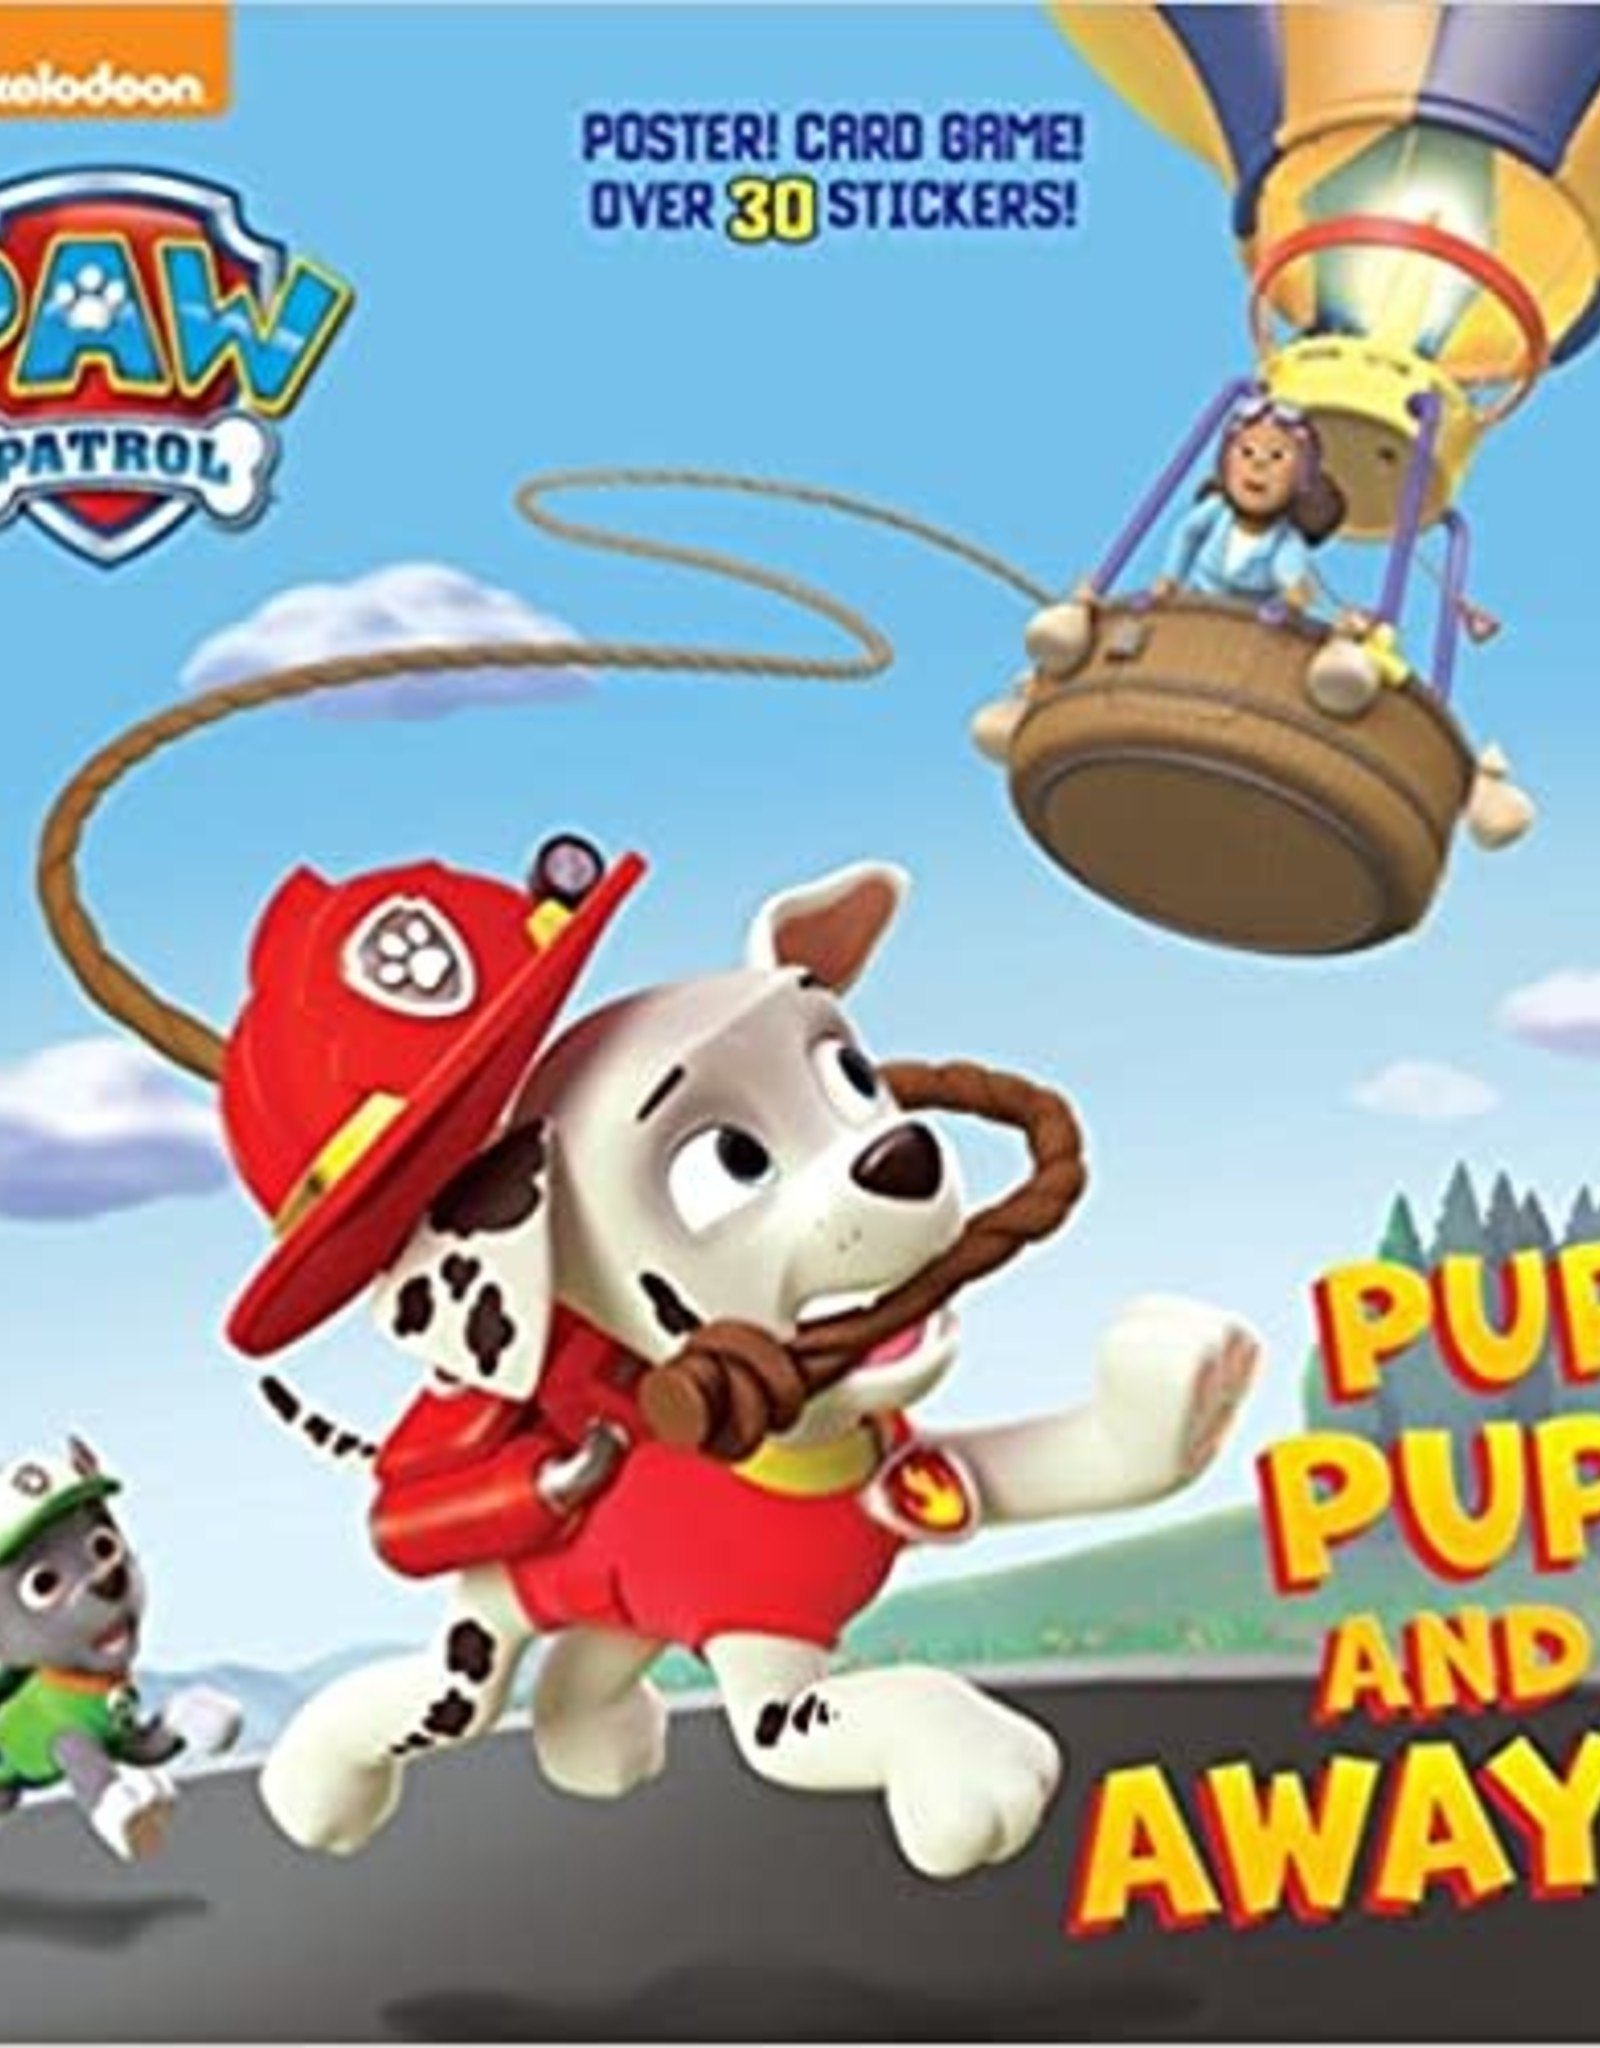 Penguin Random House Paw Patrol: Pup, Pup, and Away!